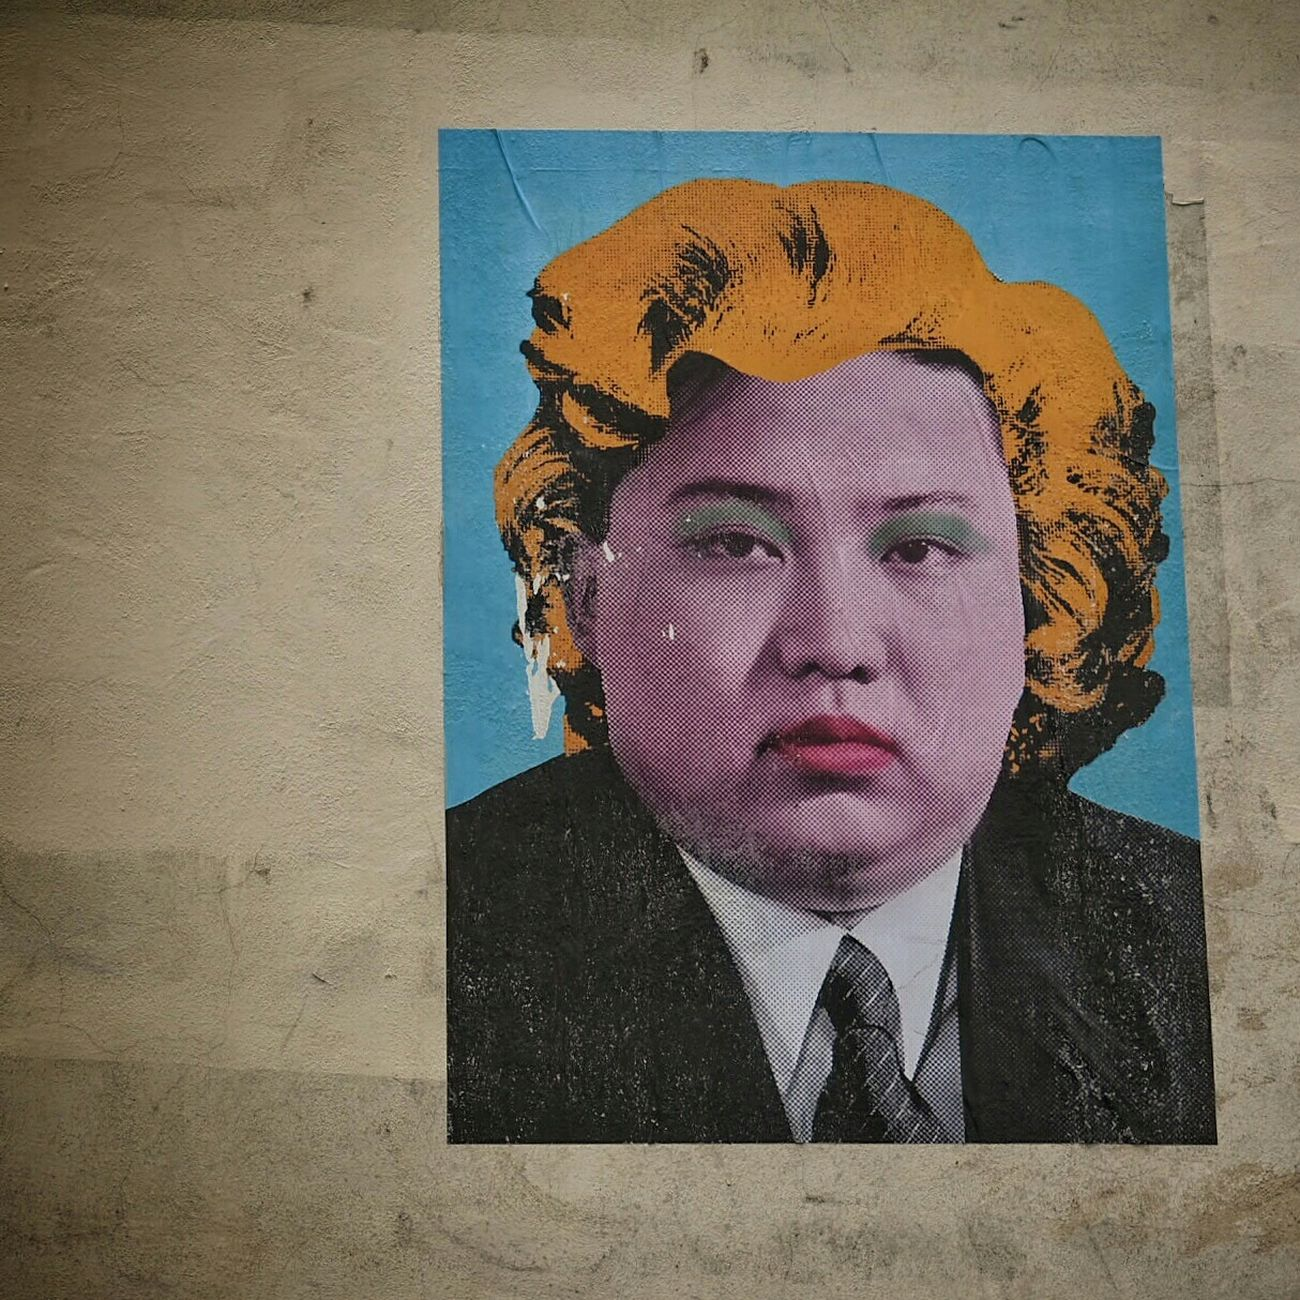 Big Kim ? Graffiti LdnGraff Graffiti Art London Street Art Stickerart Sticker Art Wall Sticker